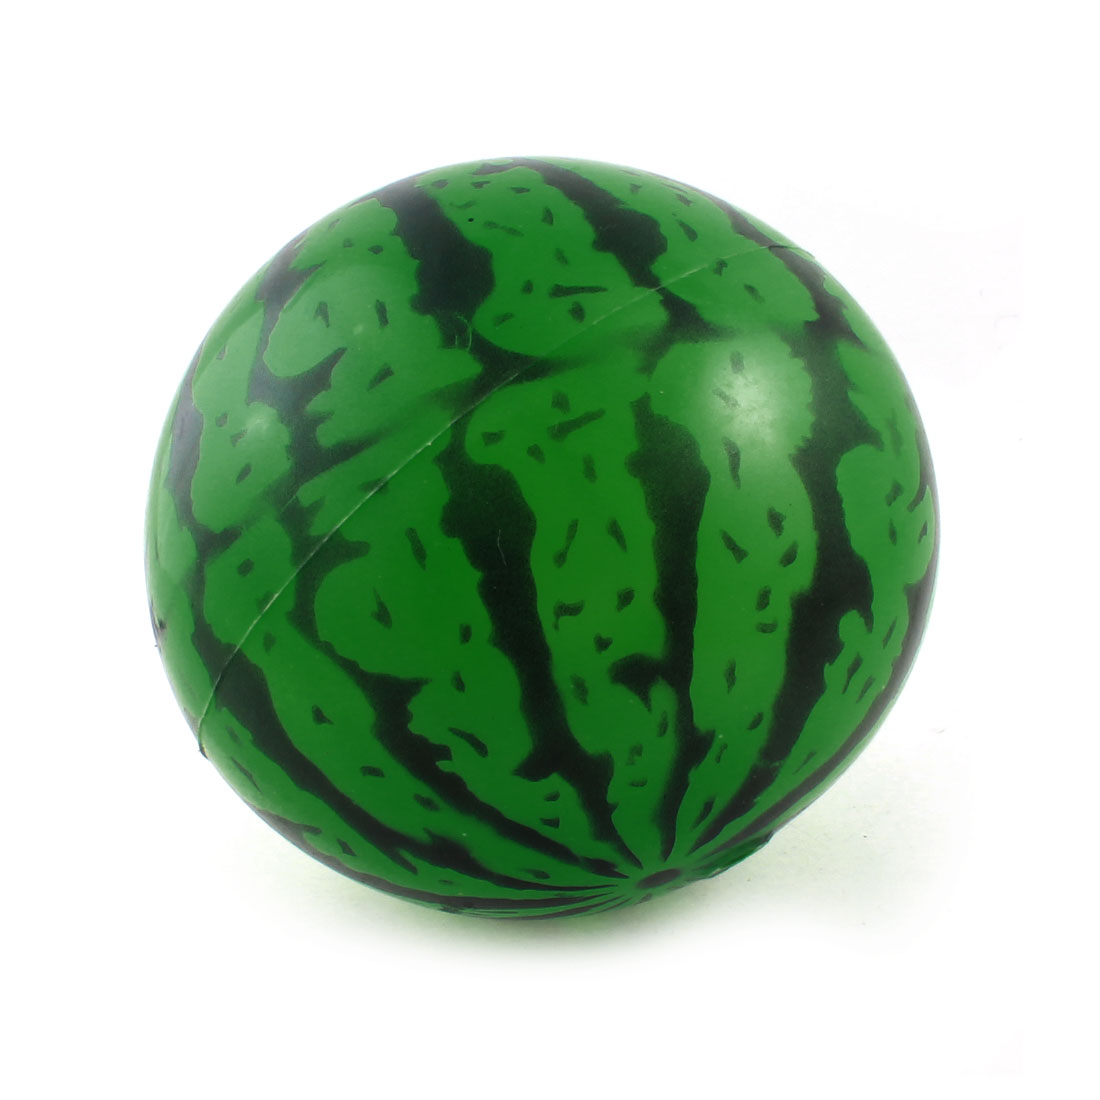 Watermelon Pattern Round Shape Stomata Designed PVC Bouncing Ball Toy for Kids